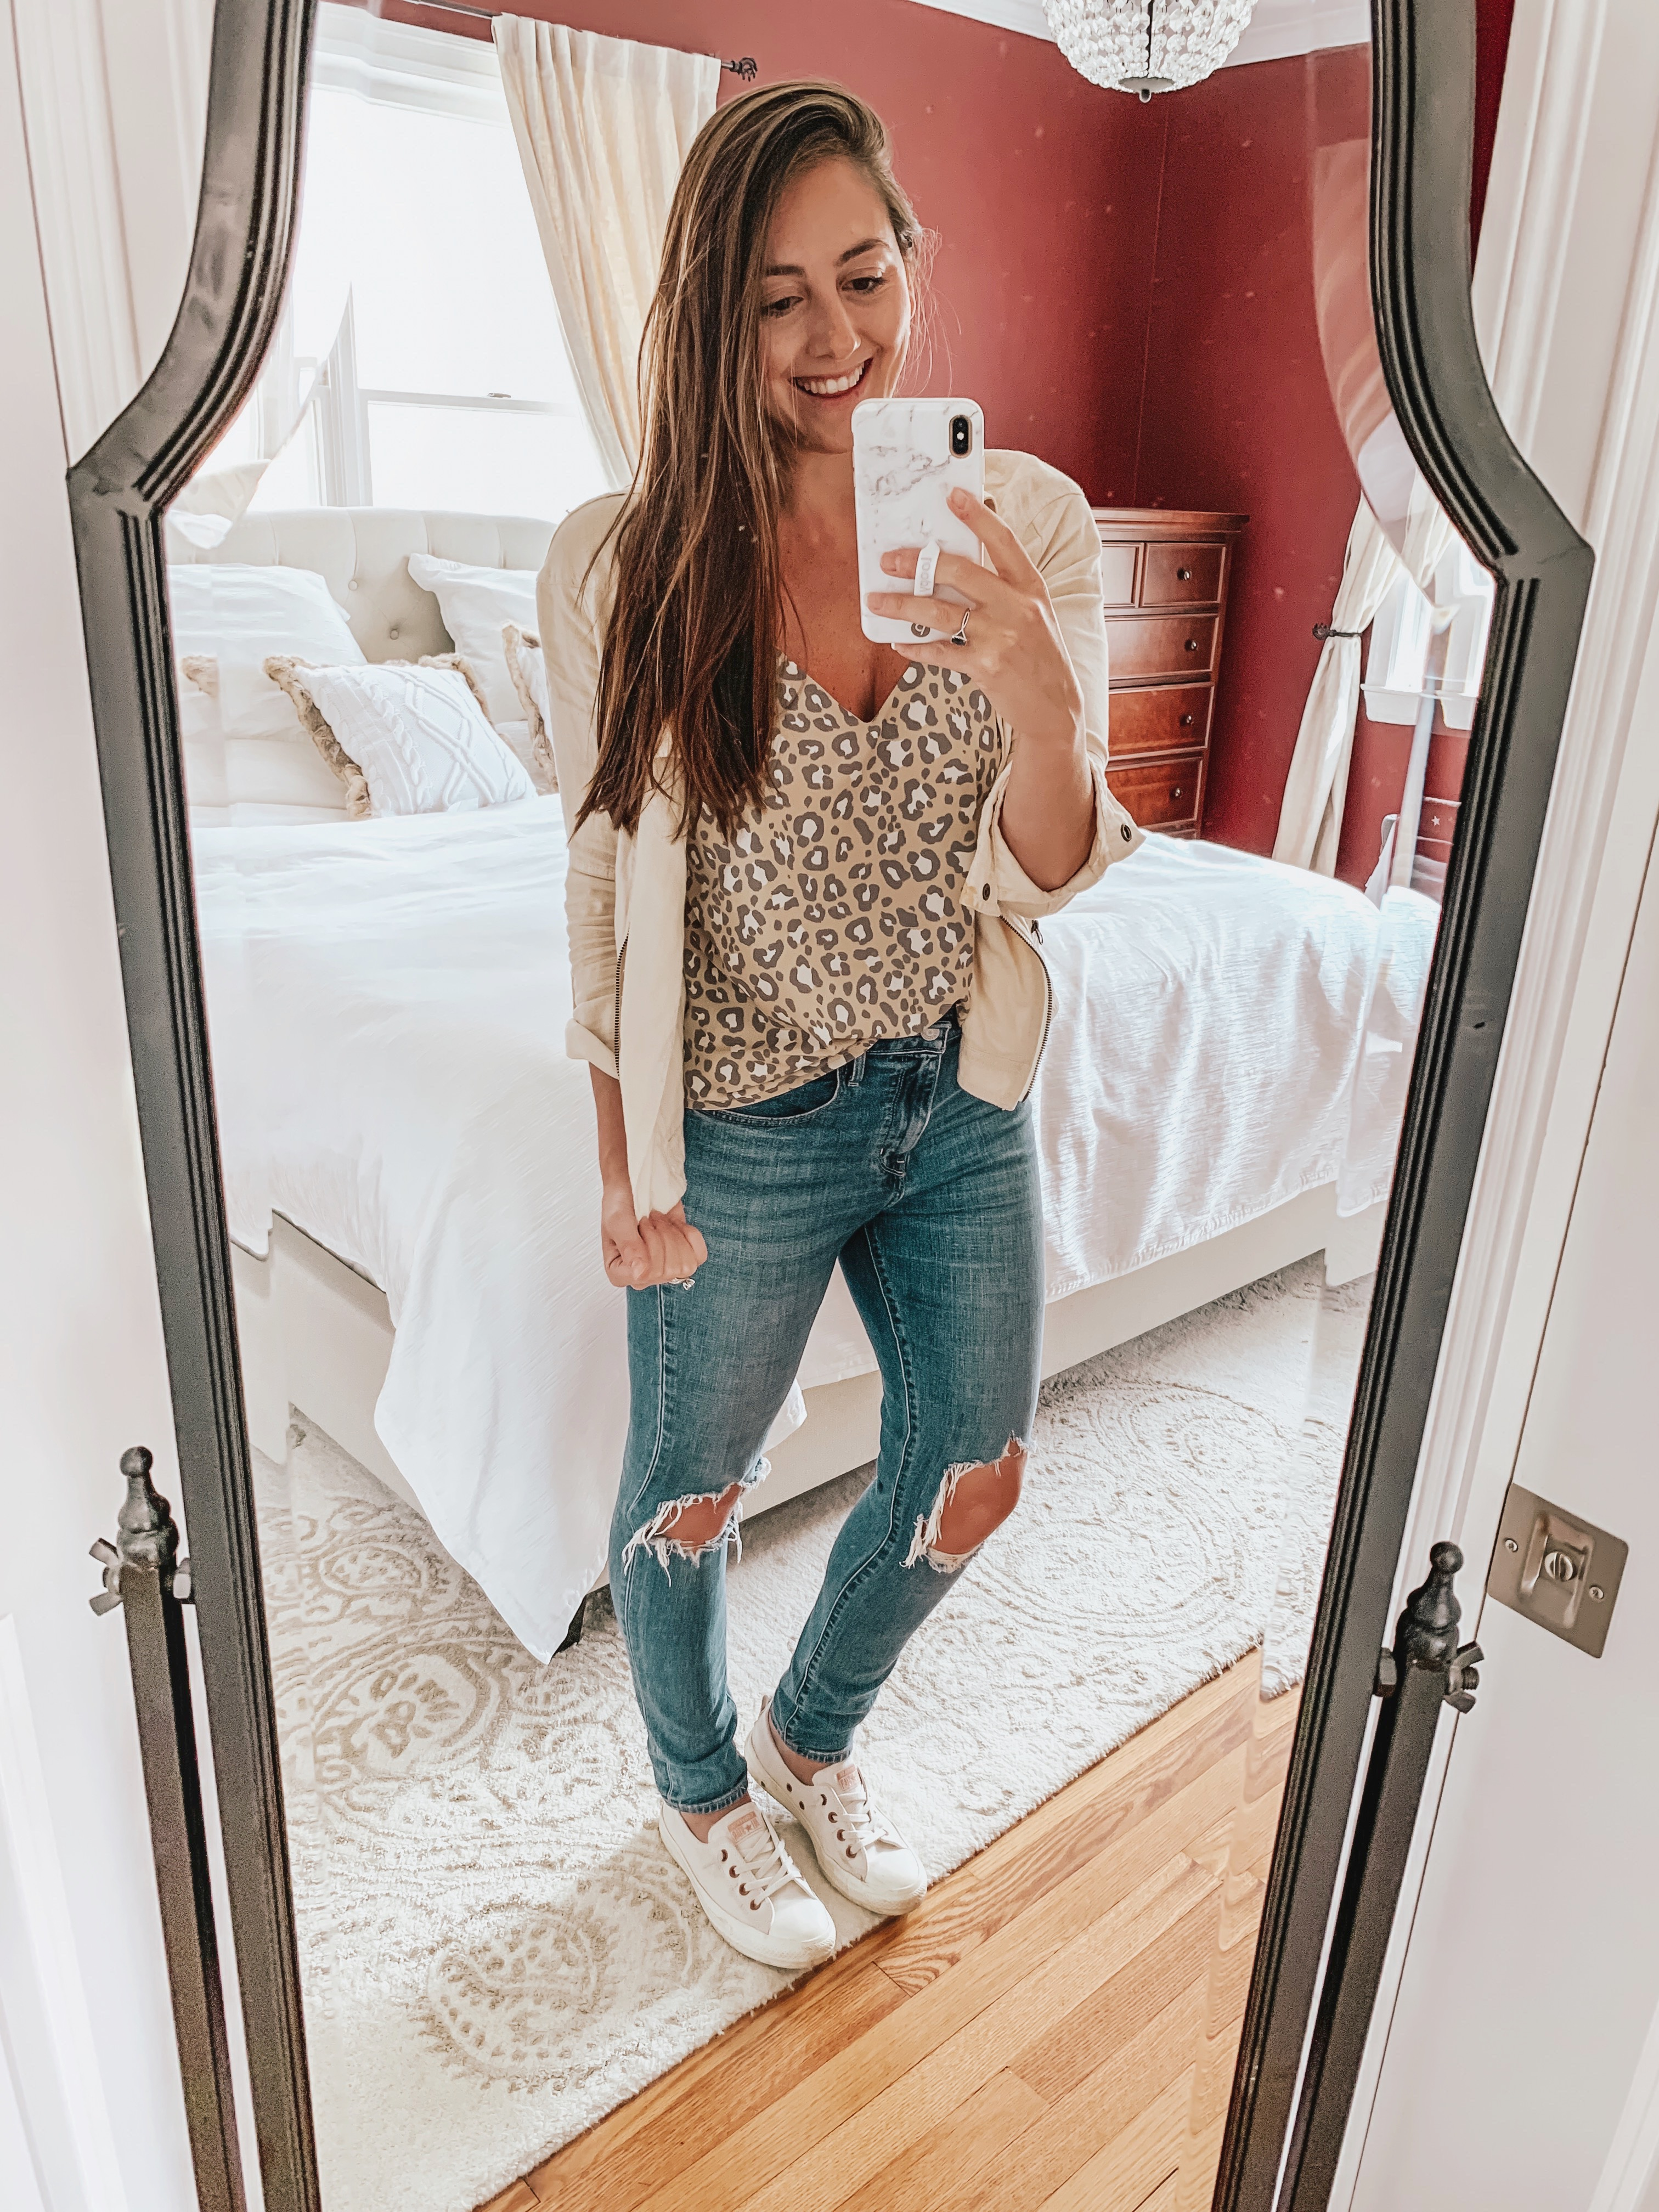 Styling Leopard Print is easy! We are showing you how to style a leopard print top 4 different ways to give you versatilty with basic wardrobe staples!